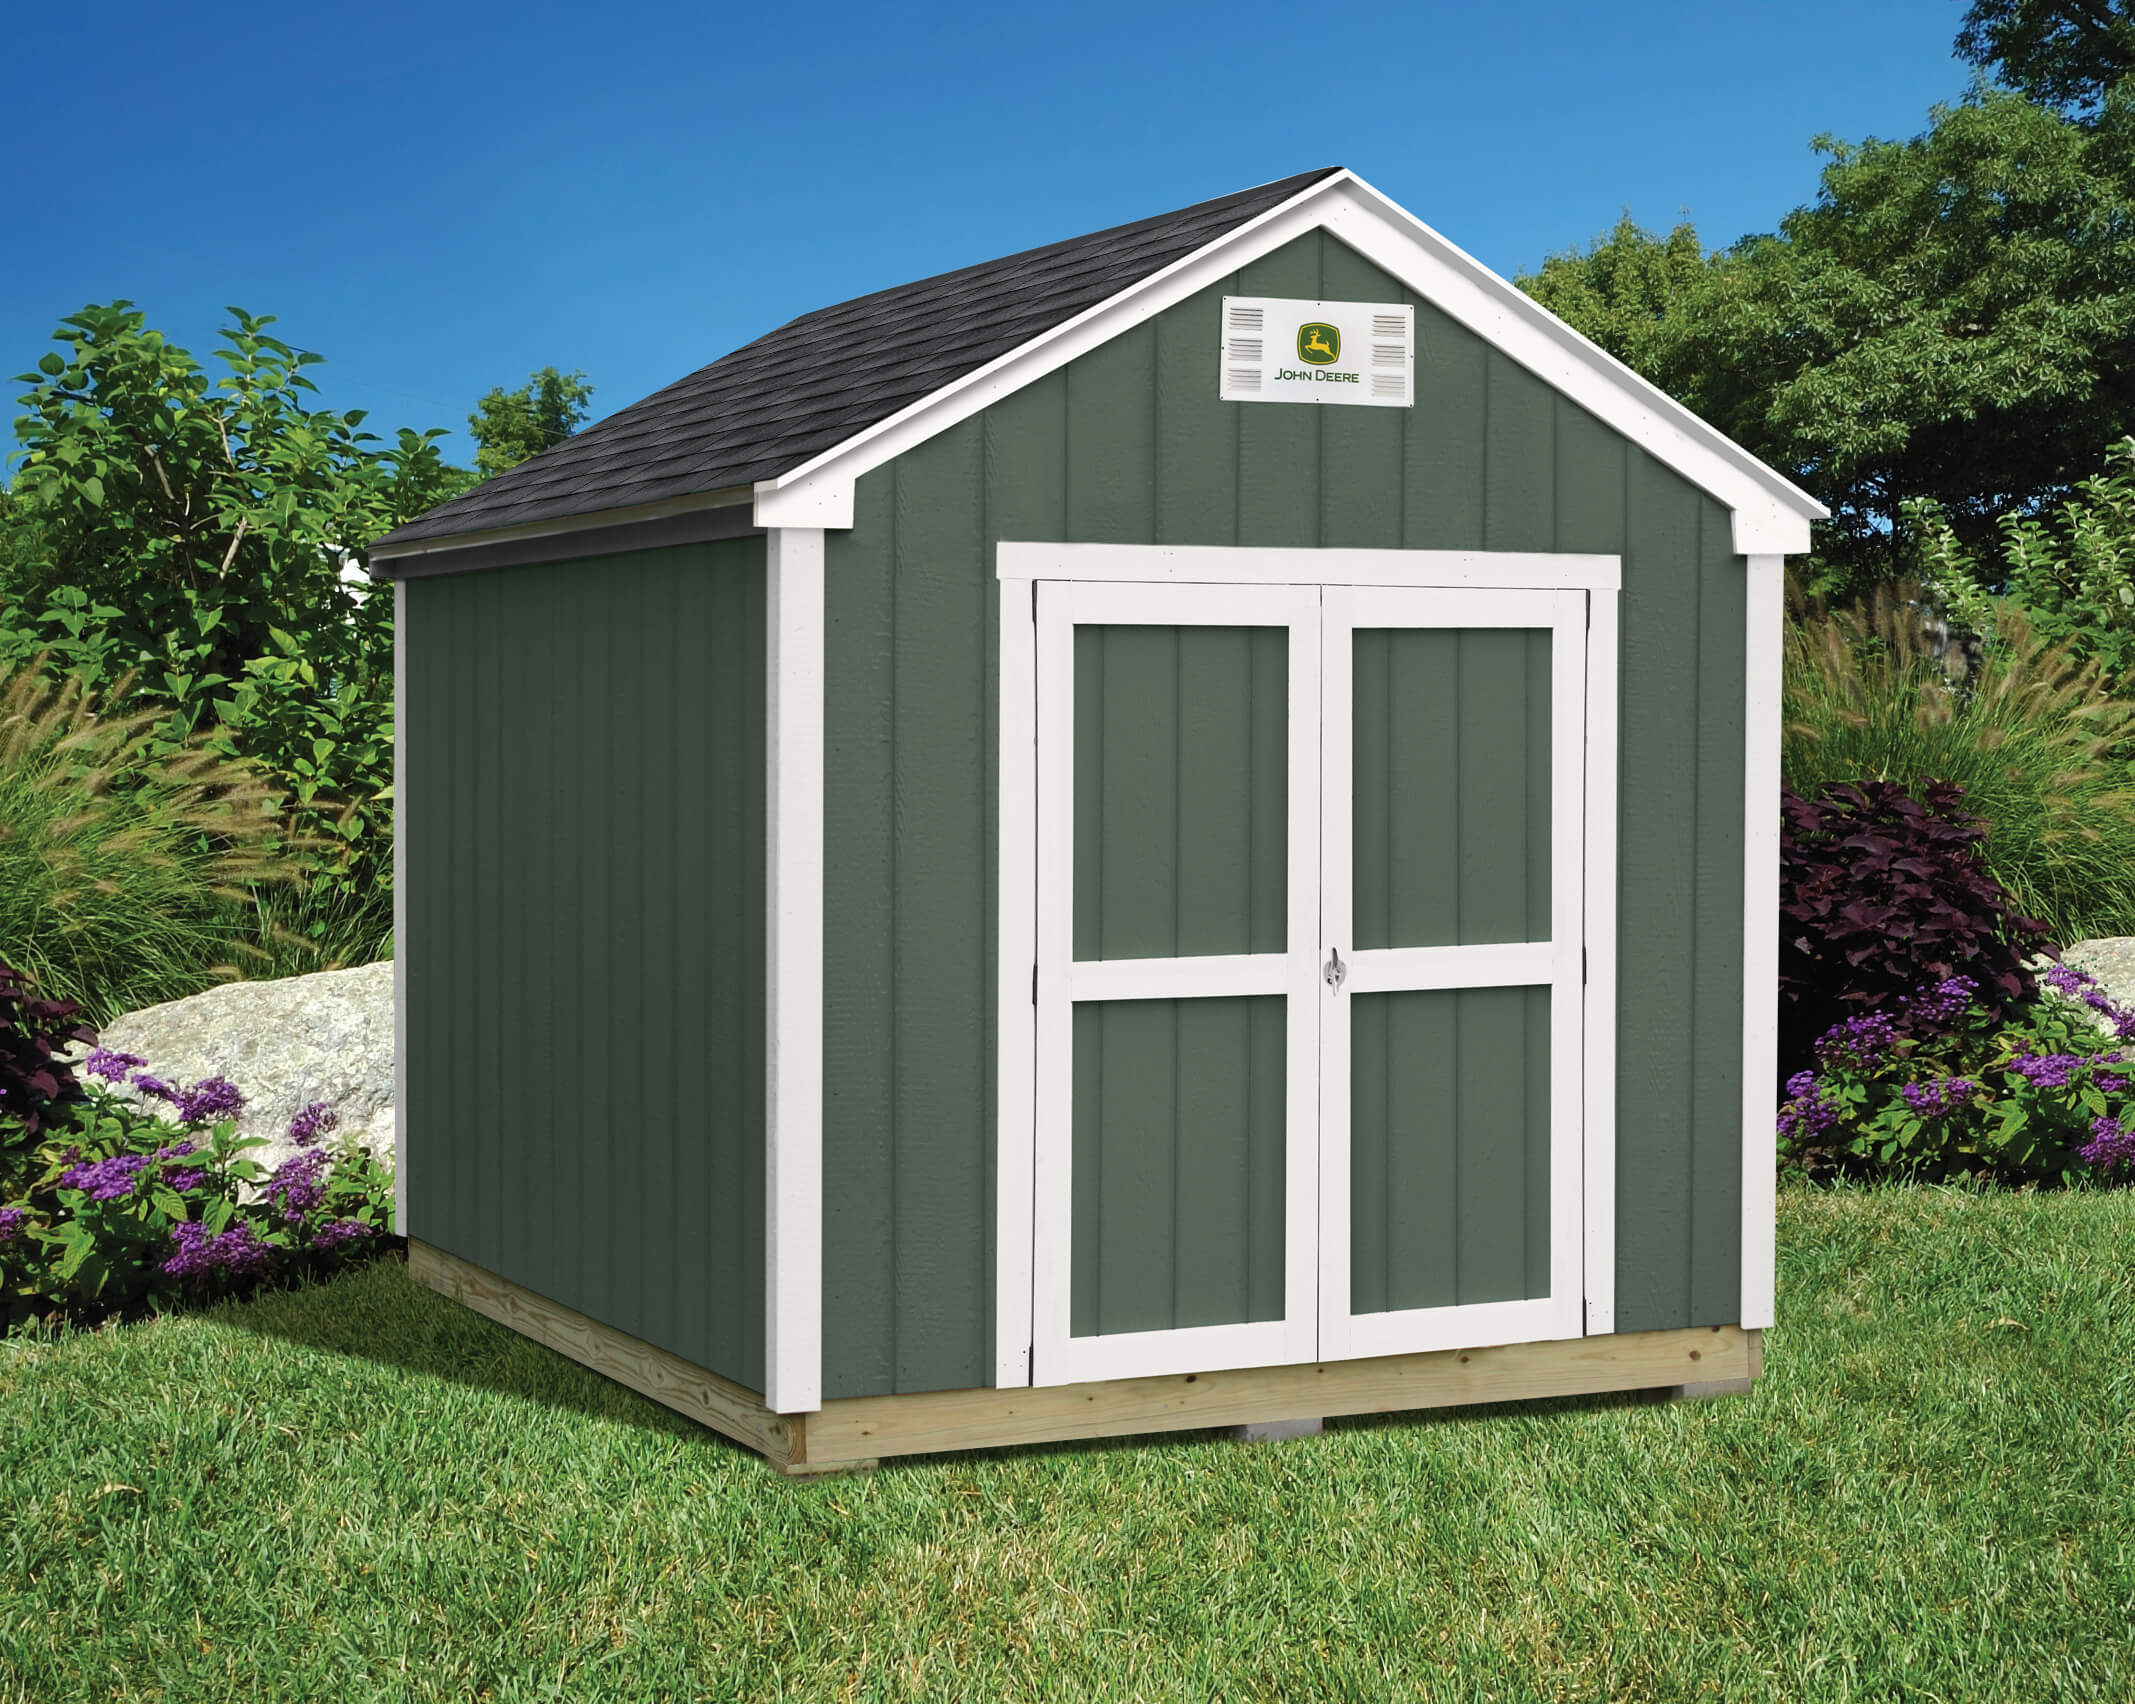 NEW SHED ORDINANCE